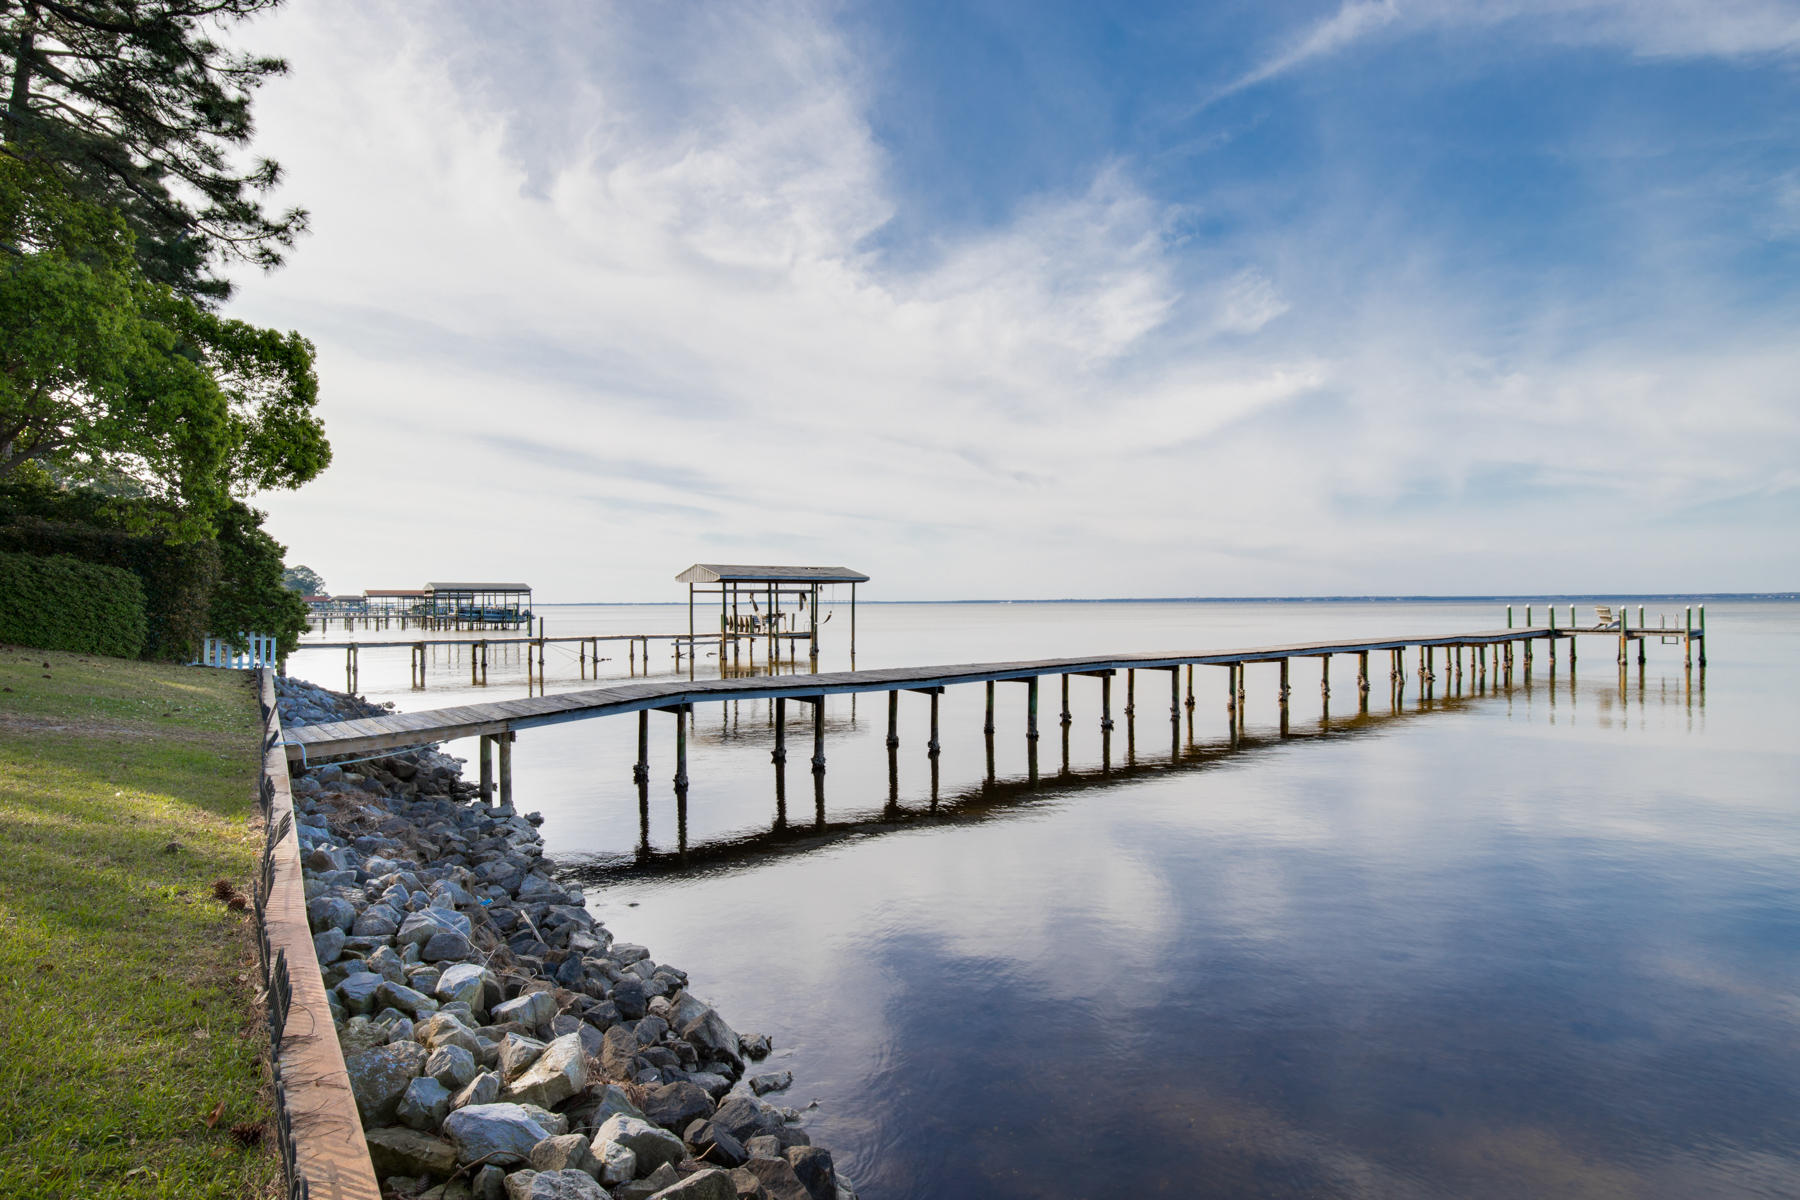 Drastically Reduced! This house is a must see! Graceful elegance, and exquisite Bay views! This custom built Bay front home shows exceptional attention to detail, with phenomenal Choctawhatchee Bay views from almost every room in the house. These views draw you in when you first walk up to the glass front doors! This home is built to last, with premium upgrades and finishes throughout! The spacious, open floor plan is perfect for entertaining. A formal dining room sits adjacent to the large foyer. On the other side of the foyer you are greeted by a large office/library with floor-to-ceiling built-in book shelves that hold over 2,000 books (don't worry, the books are included with the home). The family room features a gas fireplace, and is open to the large kitchen. The kitchen is a dream layout for cooking demos, or hosting dinner parties, with the gas cooktop mounted in the center island and flanked by two spacious pantries and plenty of counter & cabinet space.  The private Master is off the formal living room, and again has excellent bay views. There is also plenty of space with a large wall of built in cabinets, 2 walk in closets, & separate vanities in the bathroom.  On the opposite side of the home there are the 2nd and 3rd bedrooms as well as a hall bathroom, and the large laundry room.  Upstairs you'll find the 4th bedroom and 3rd bathroom as well as a large bonus room that would make an excellent home theater or game room. There are also 2 LARGE attic storerooms, one accessed by a set of stairs in the garage.  Out back there is a large screened in lanai with a hot tub and heated pool with easy access to the dock.  As you walk around the manicured lawn, be sure to check out the putting green tucked away behind the trees. That's right this home has a putting green with a low maintenance artificial turf surface, too help keep your golf skills up in the privacy of your own yard.  House recived a new standing seam metal roof in 2017